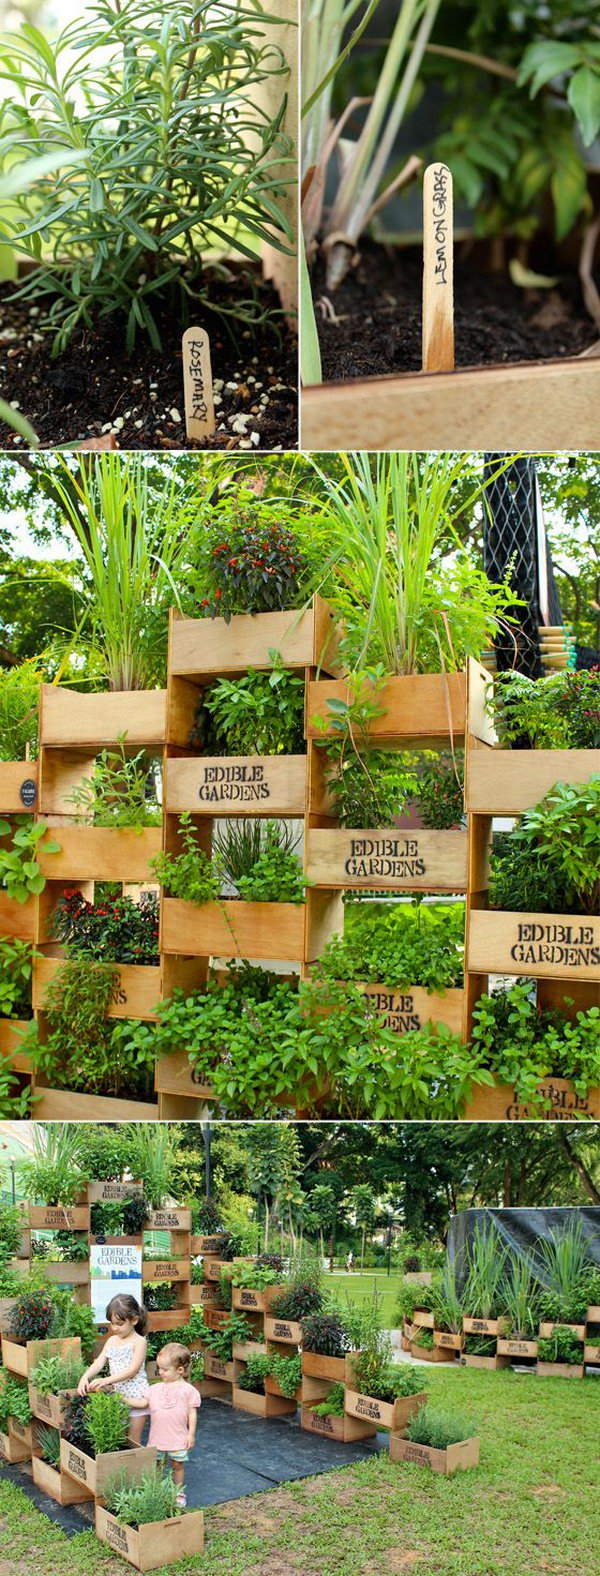 20+ cool vertical gardening ideas - hative